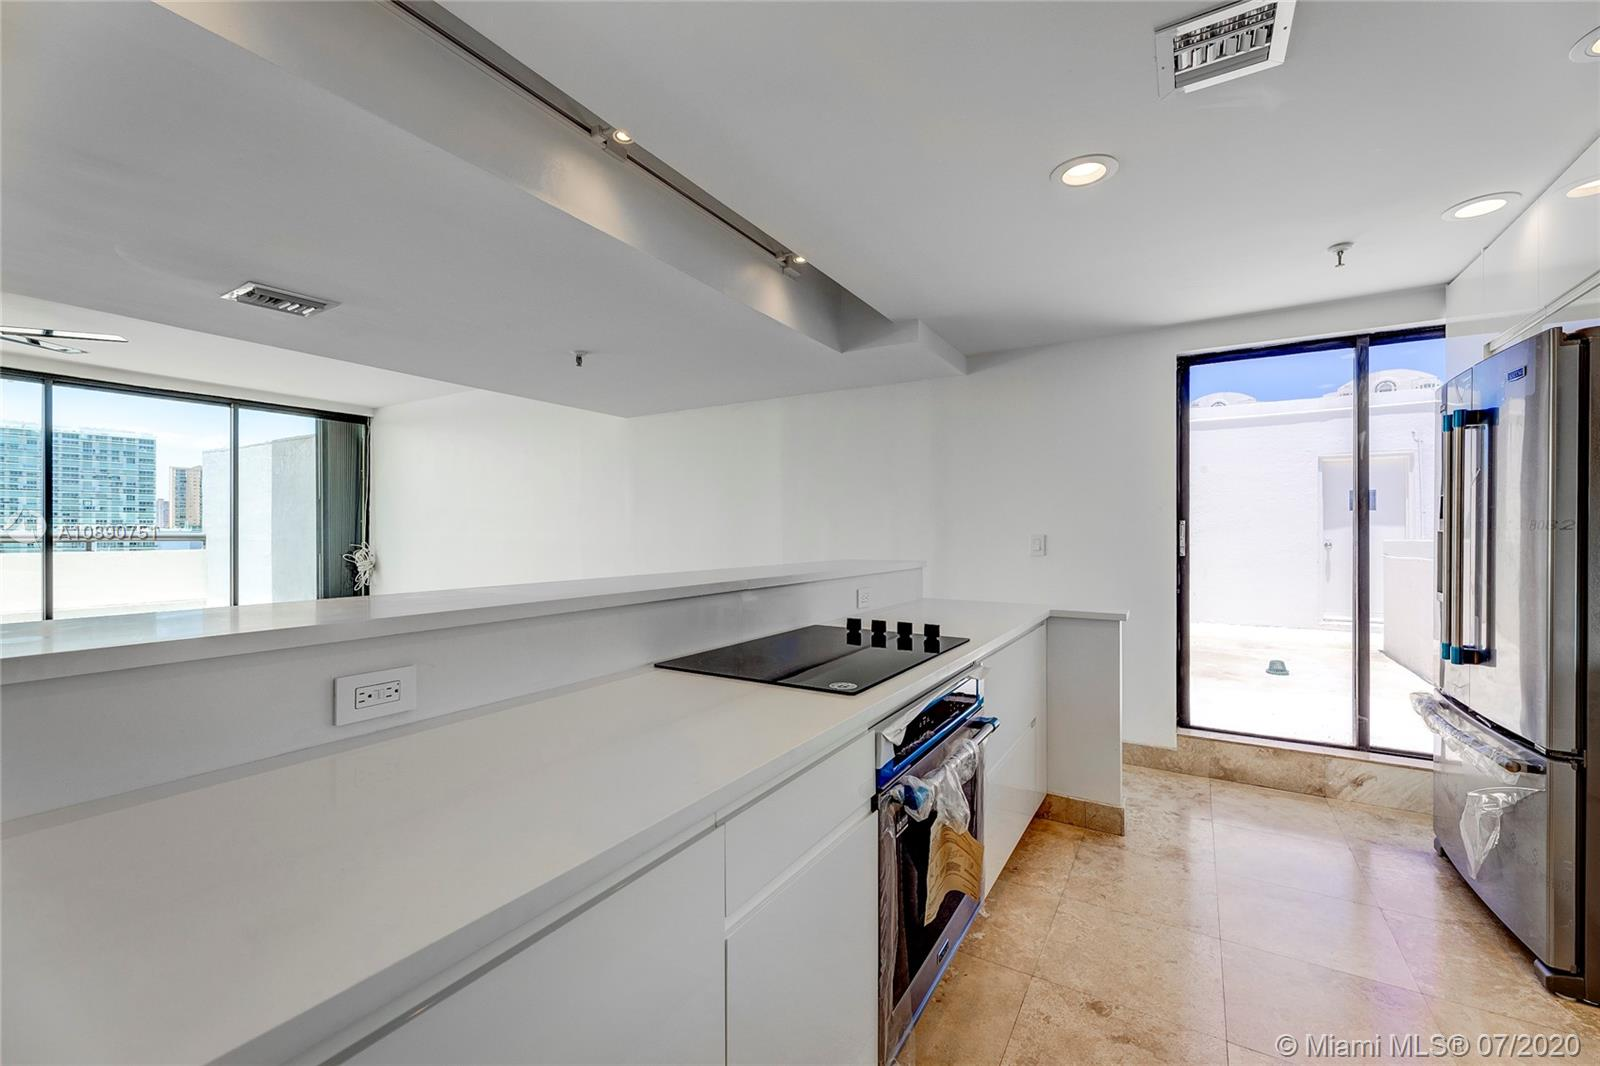 Photo of 425 Poinciana Island Drive #1444, Sunny Isles Beach, Florida, 33160 - Kitchen view with recessed lighting